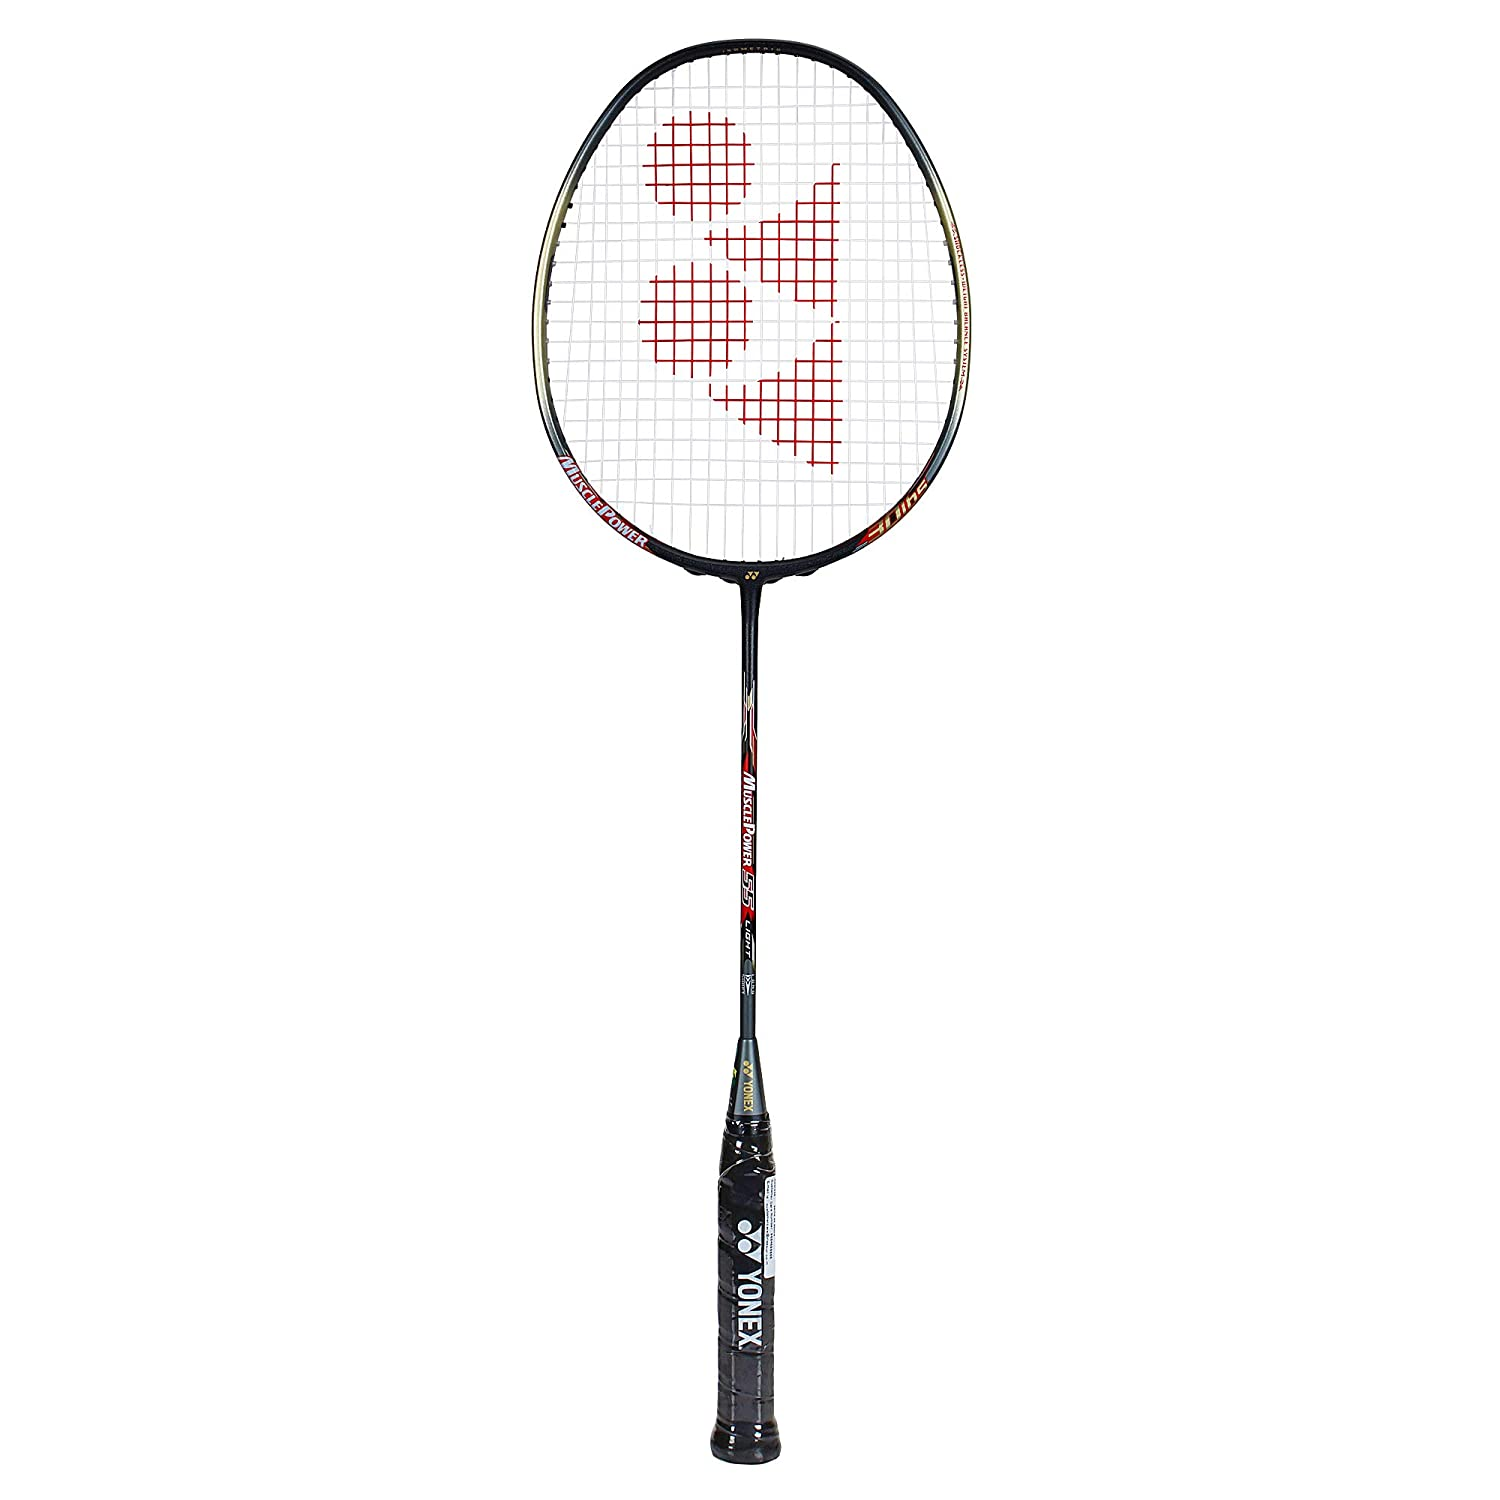 Yonex New Muscle Power Series With Free Cover (Graphite, G4